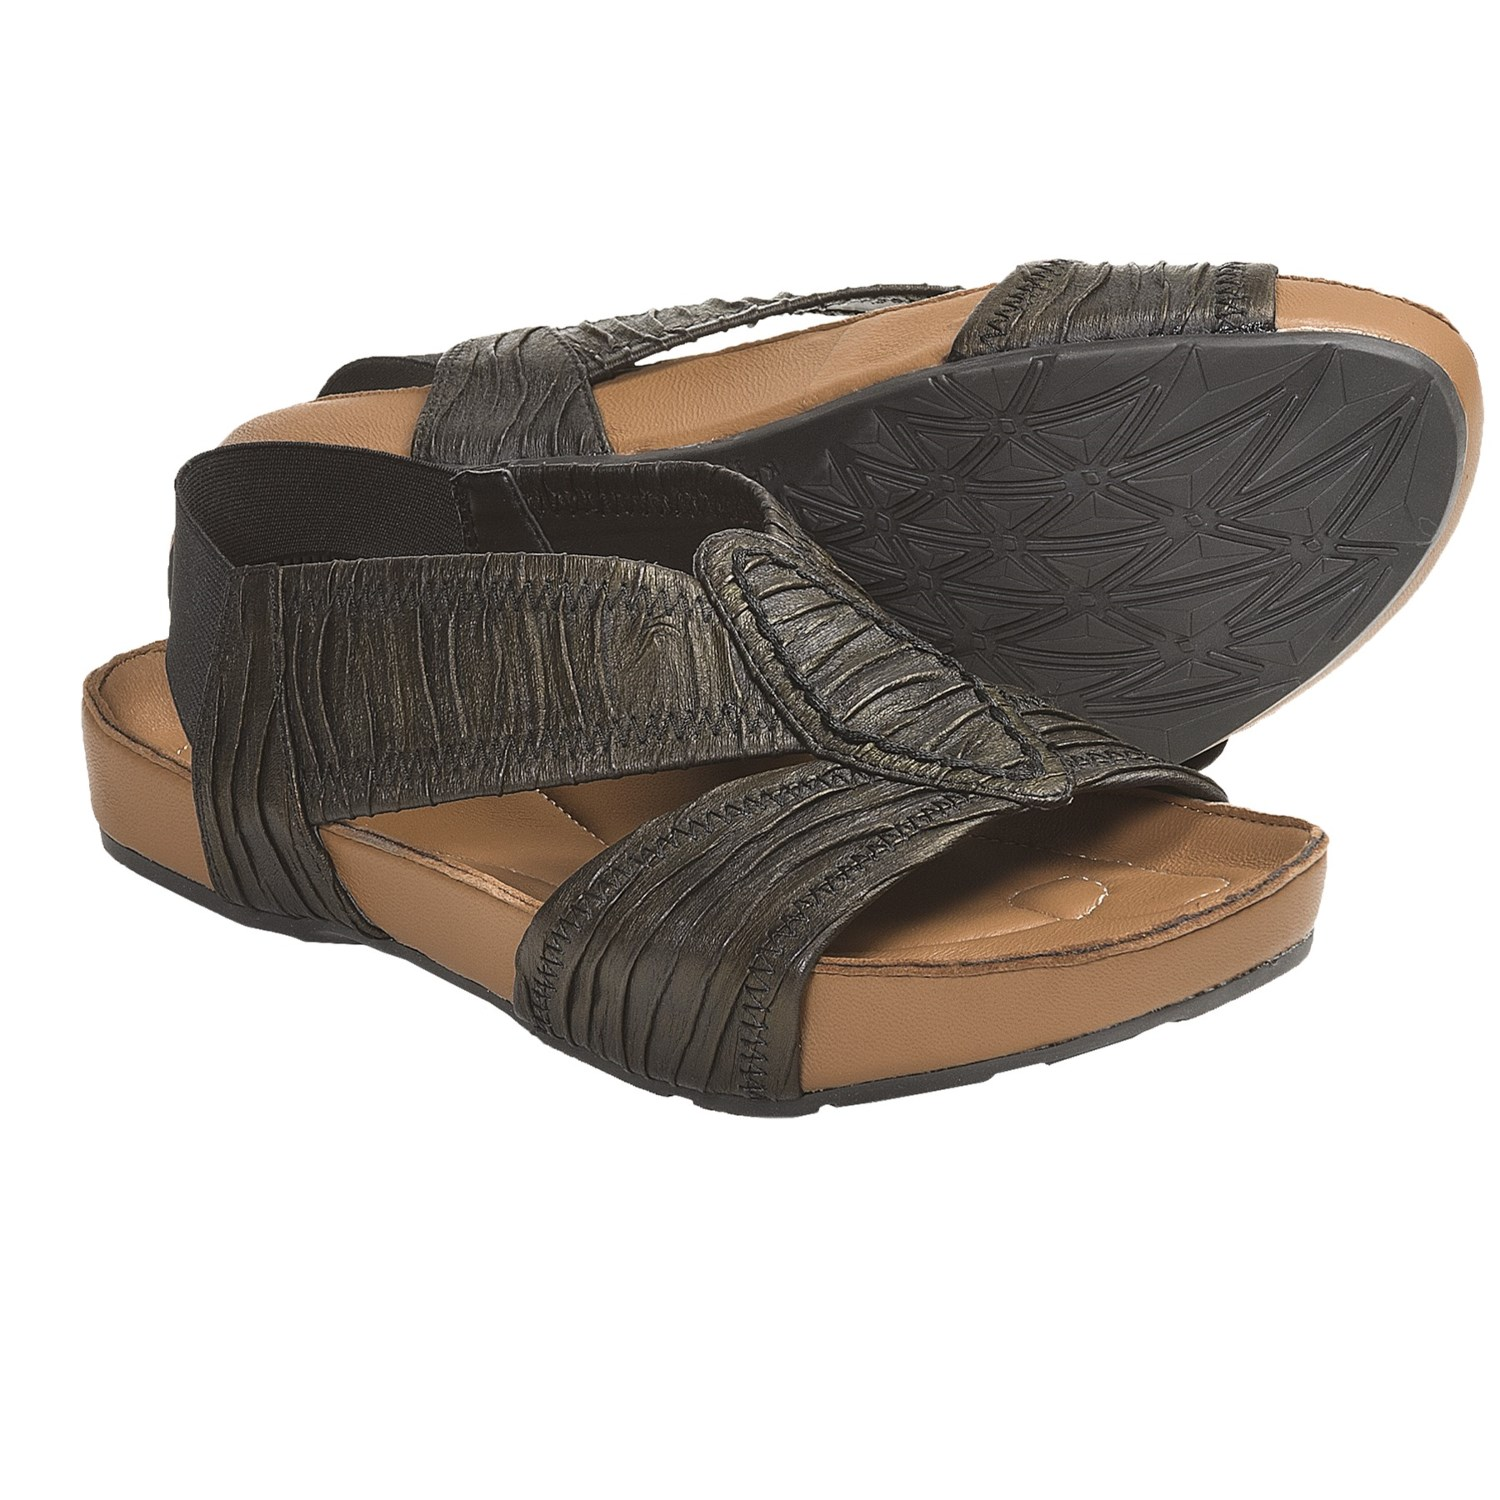 Kalso Earth Shoes Clearance Women